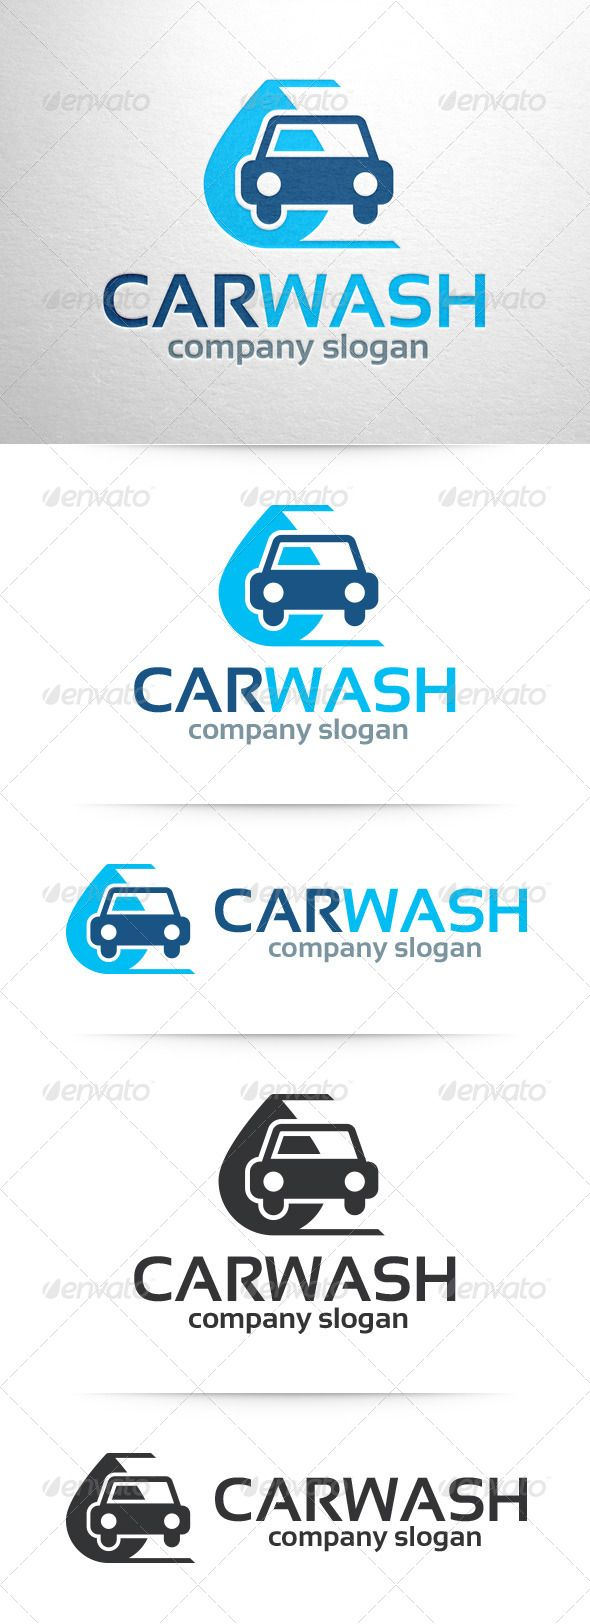 21 best car wash images on pinterest car wash retro cars and googie car wash logo v2 solutioingenieria Images